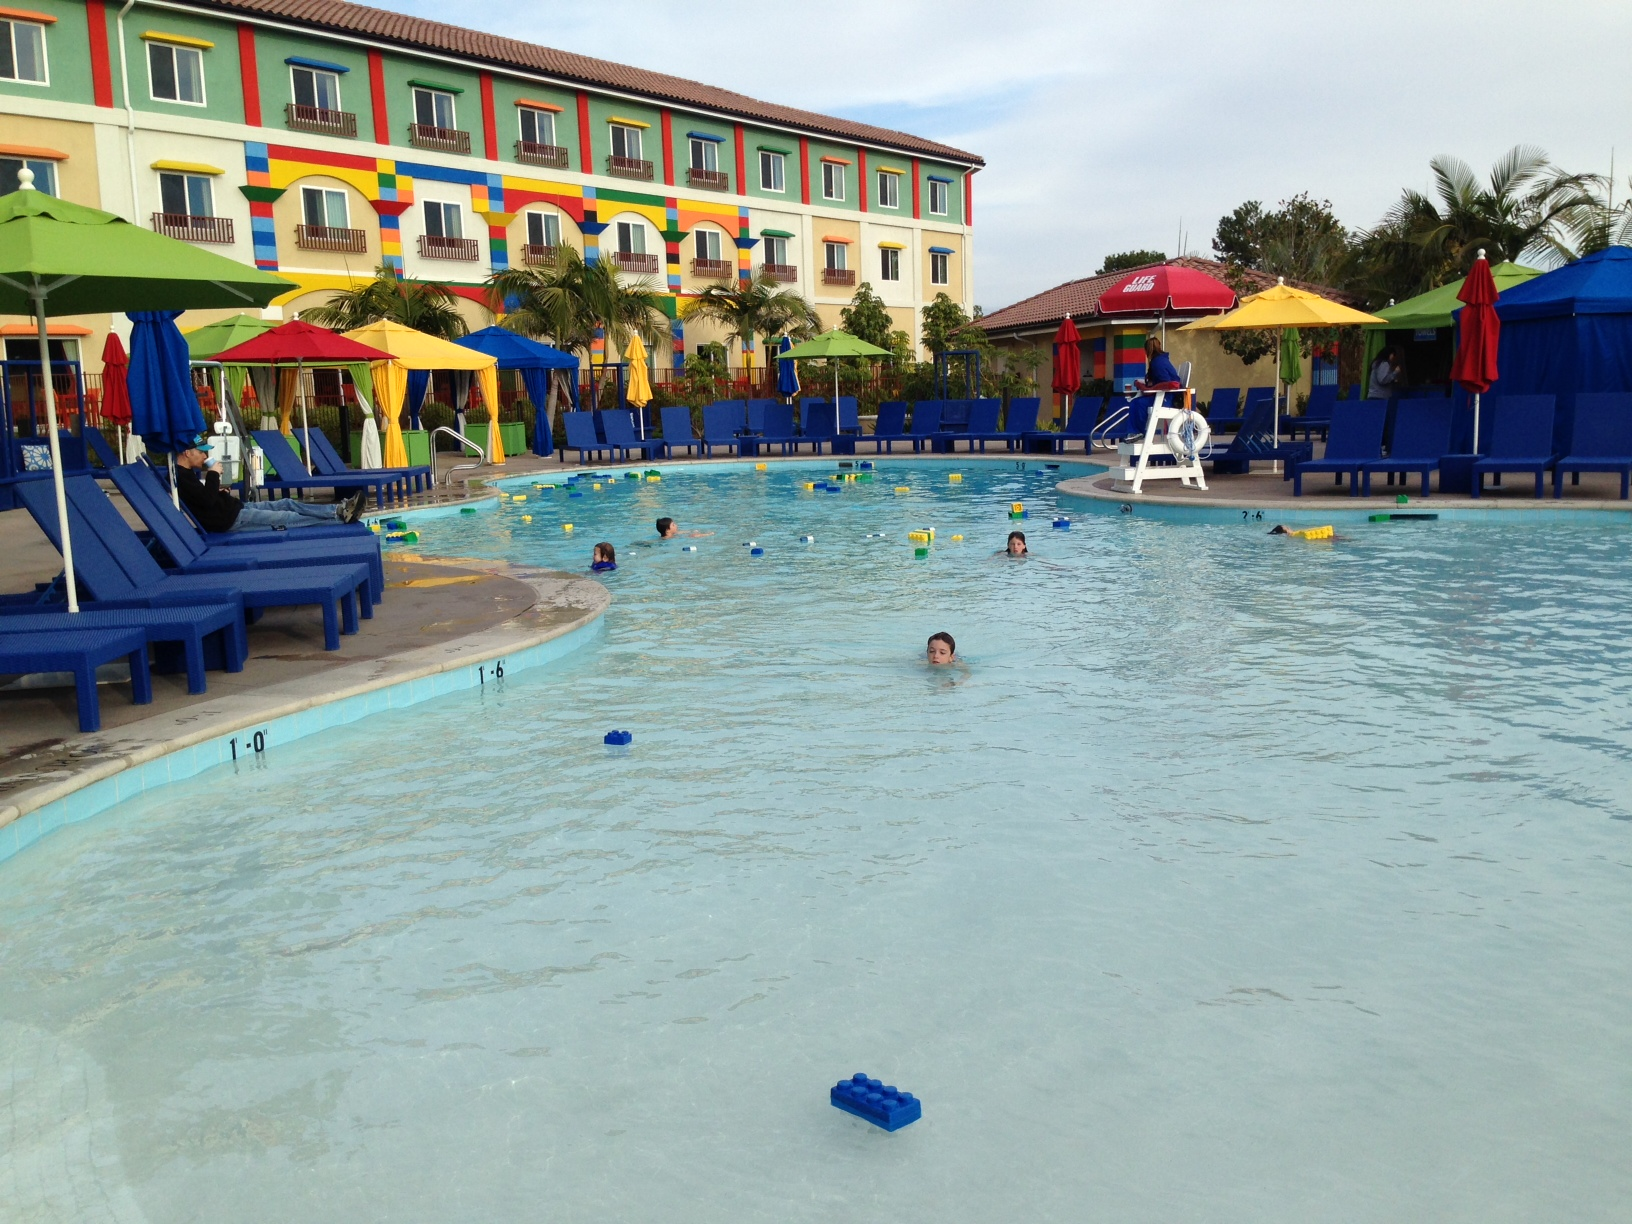 Staycation Adventure At The Legoland Hotel Oc Mom Blog